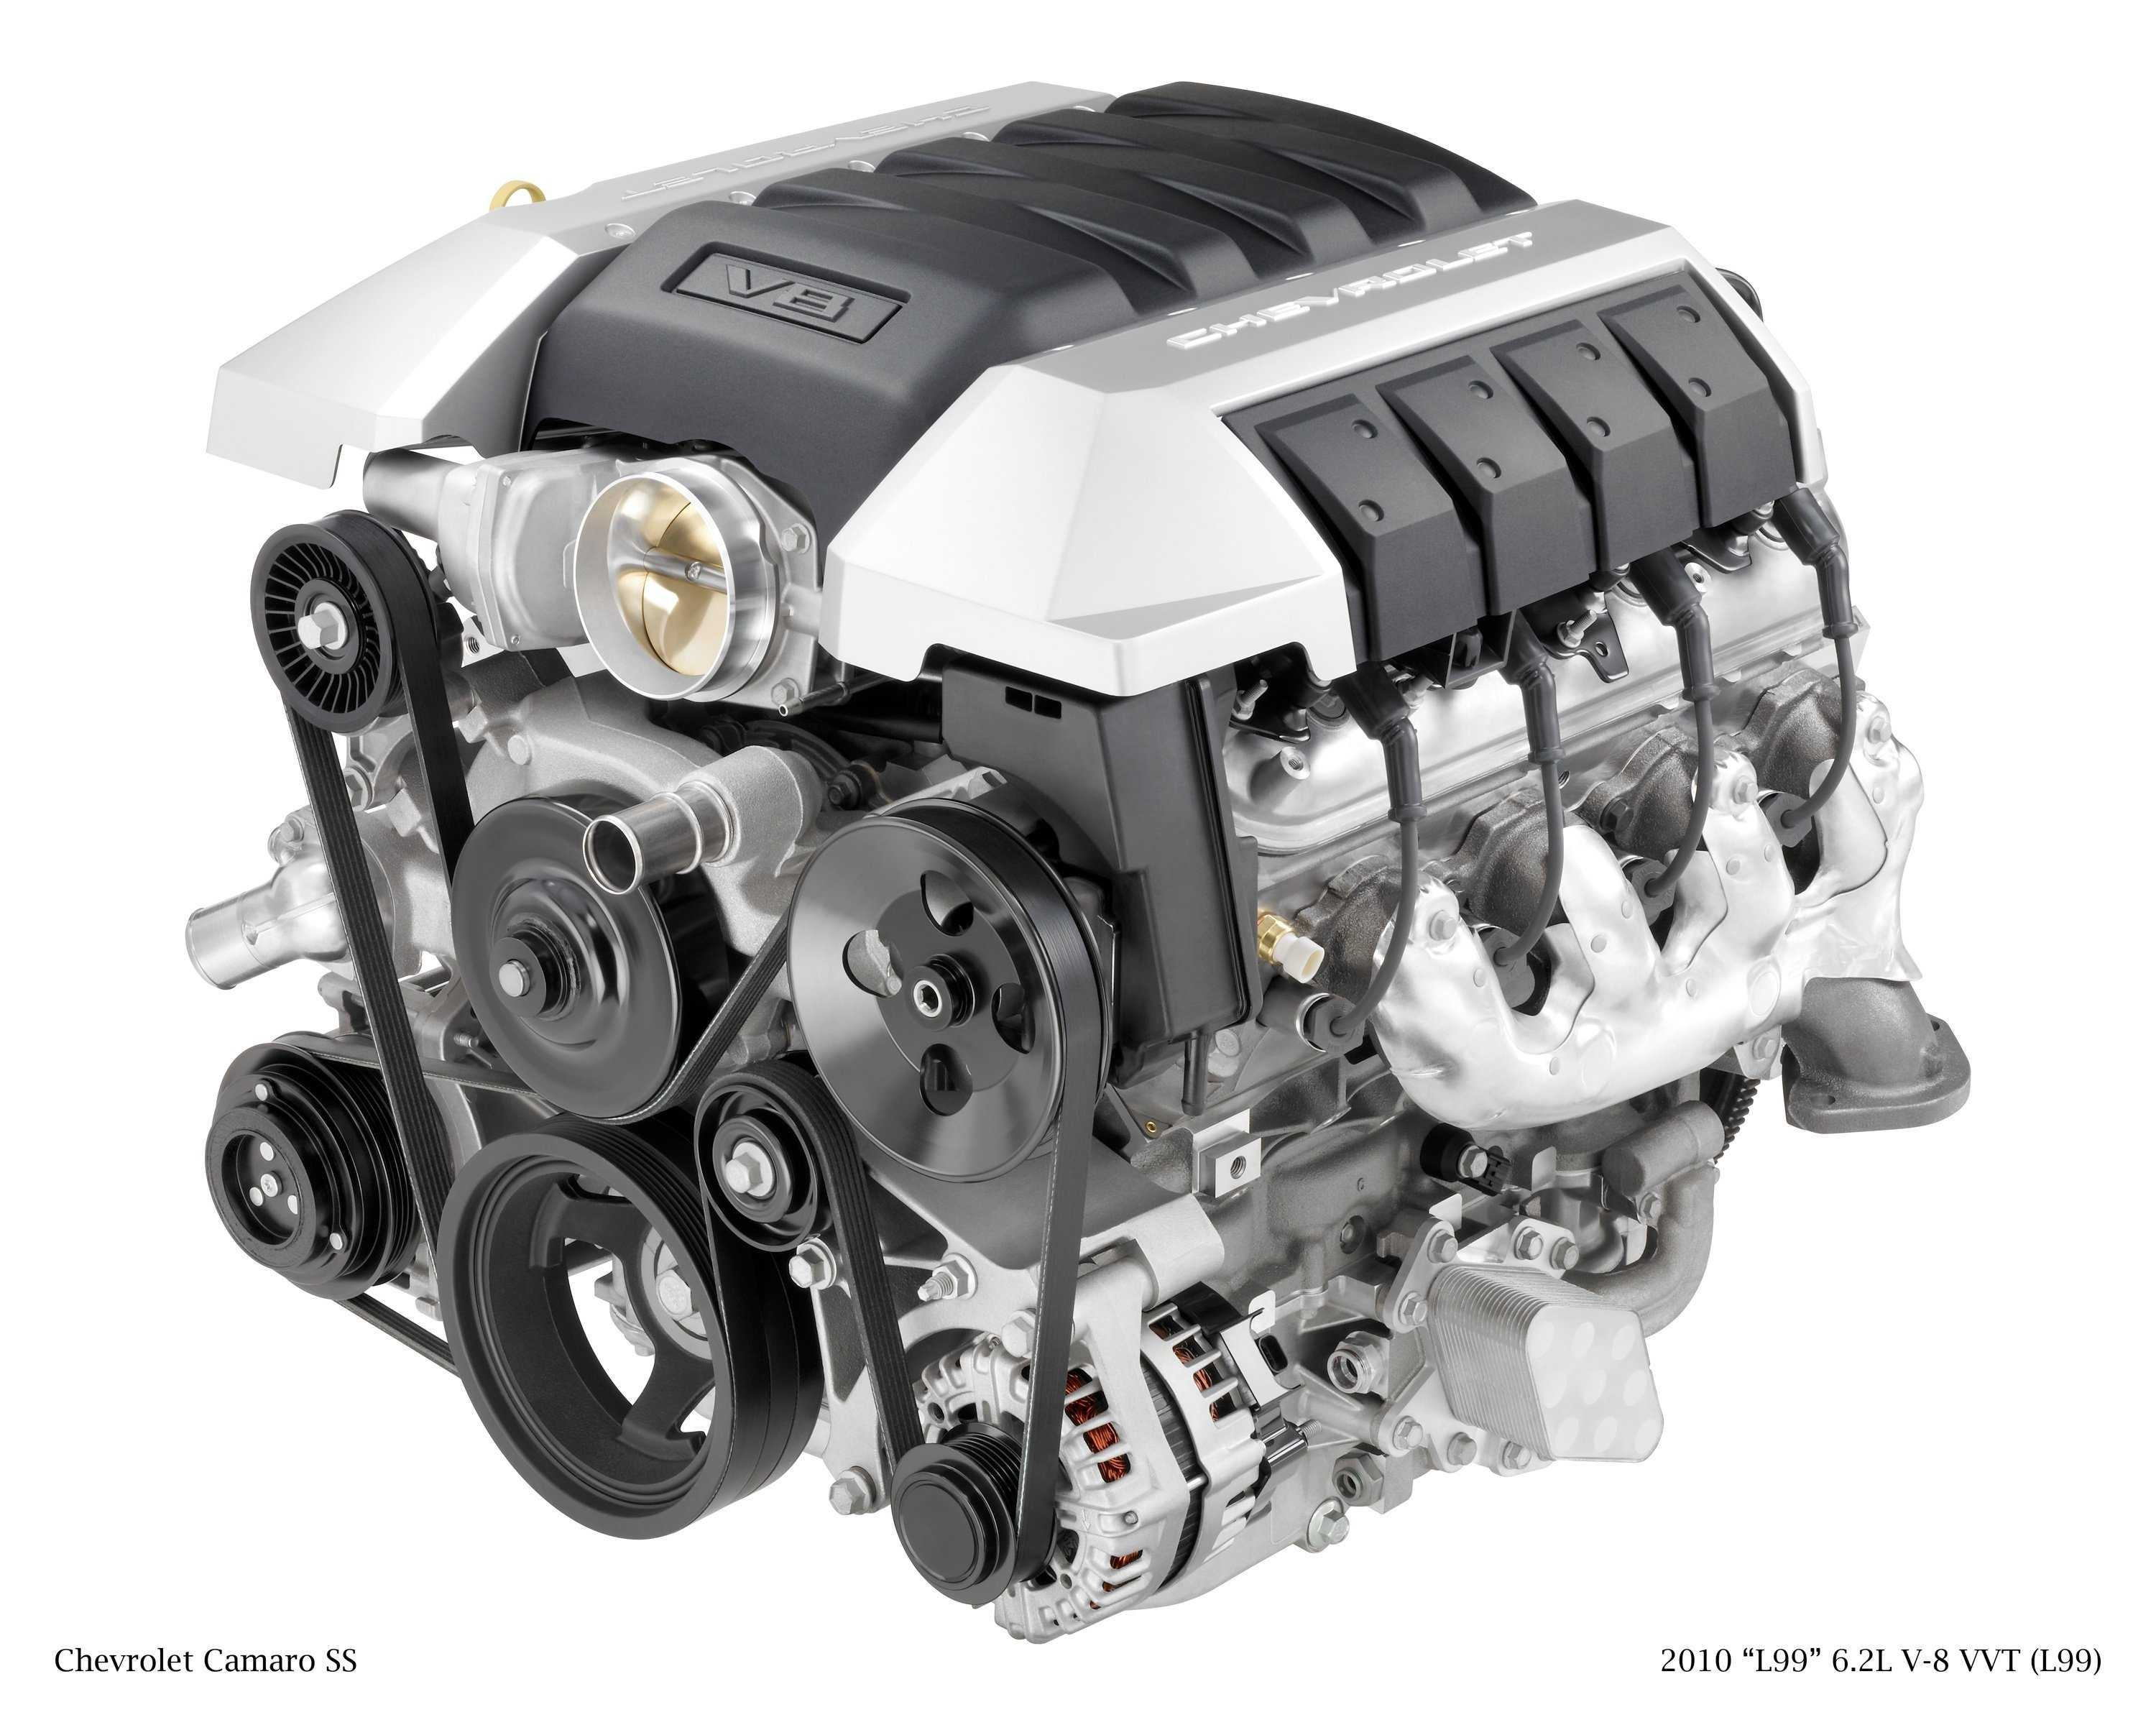 Blog - Everything You Wanted to Know About the GM LS Engine Family JE Pistons